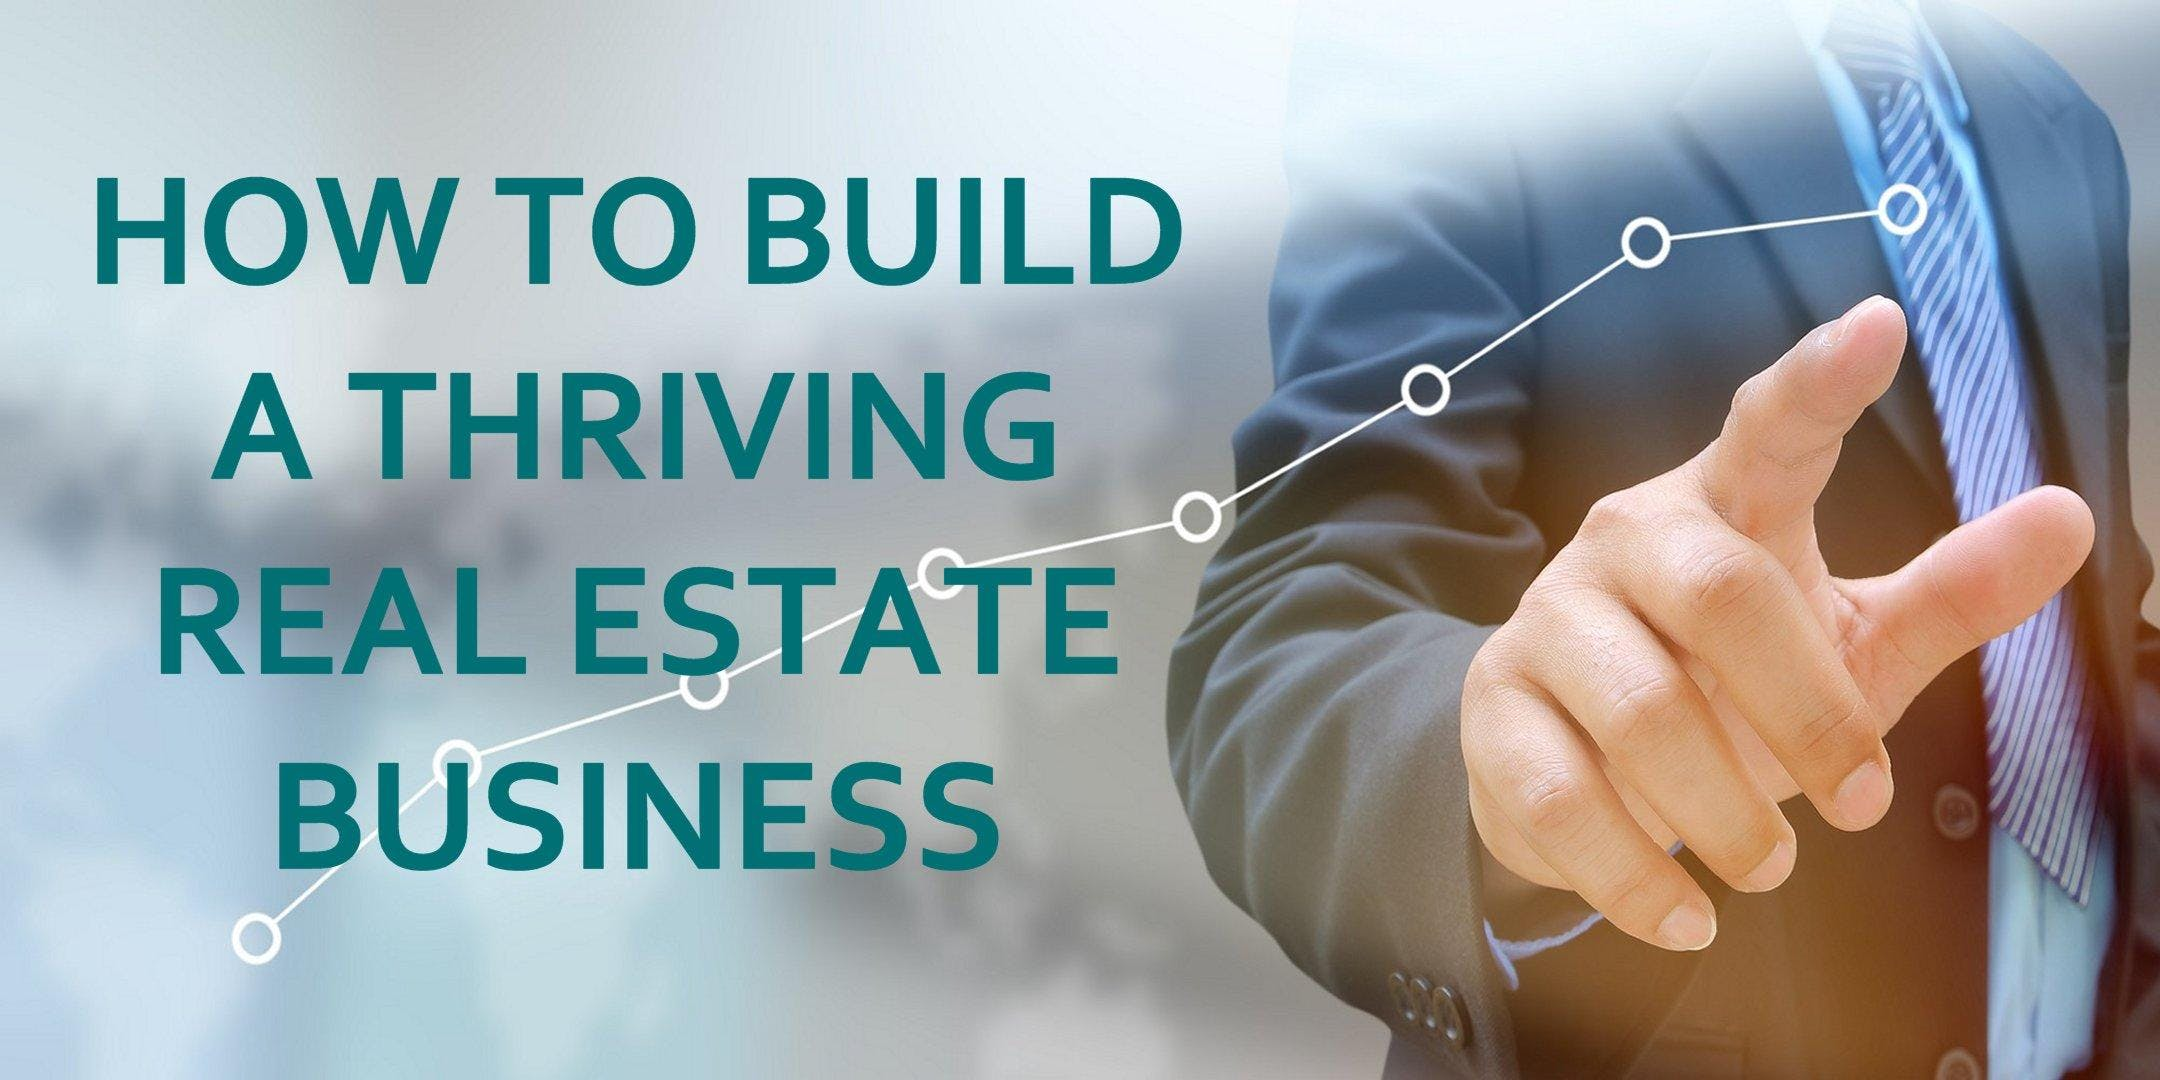 How To Build A Thriving Real Estate Business